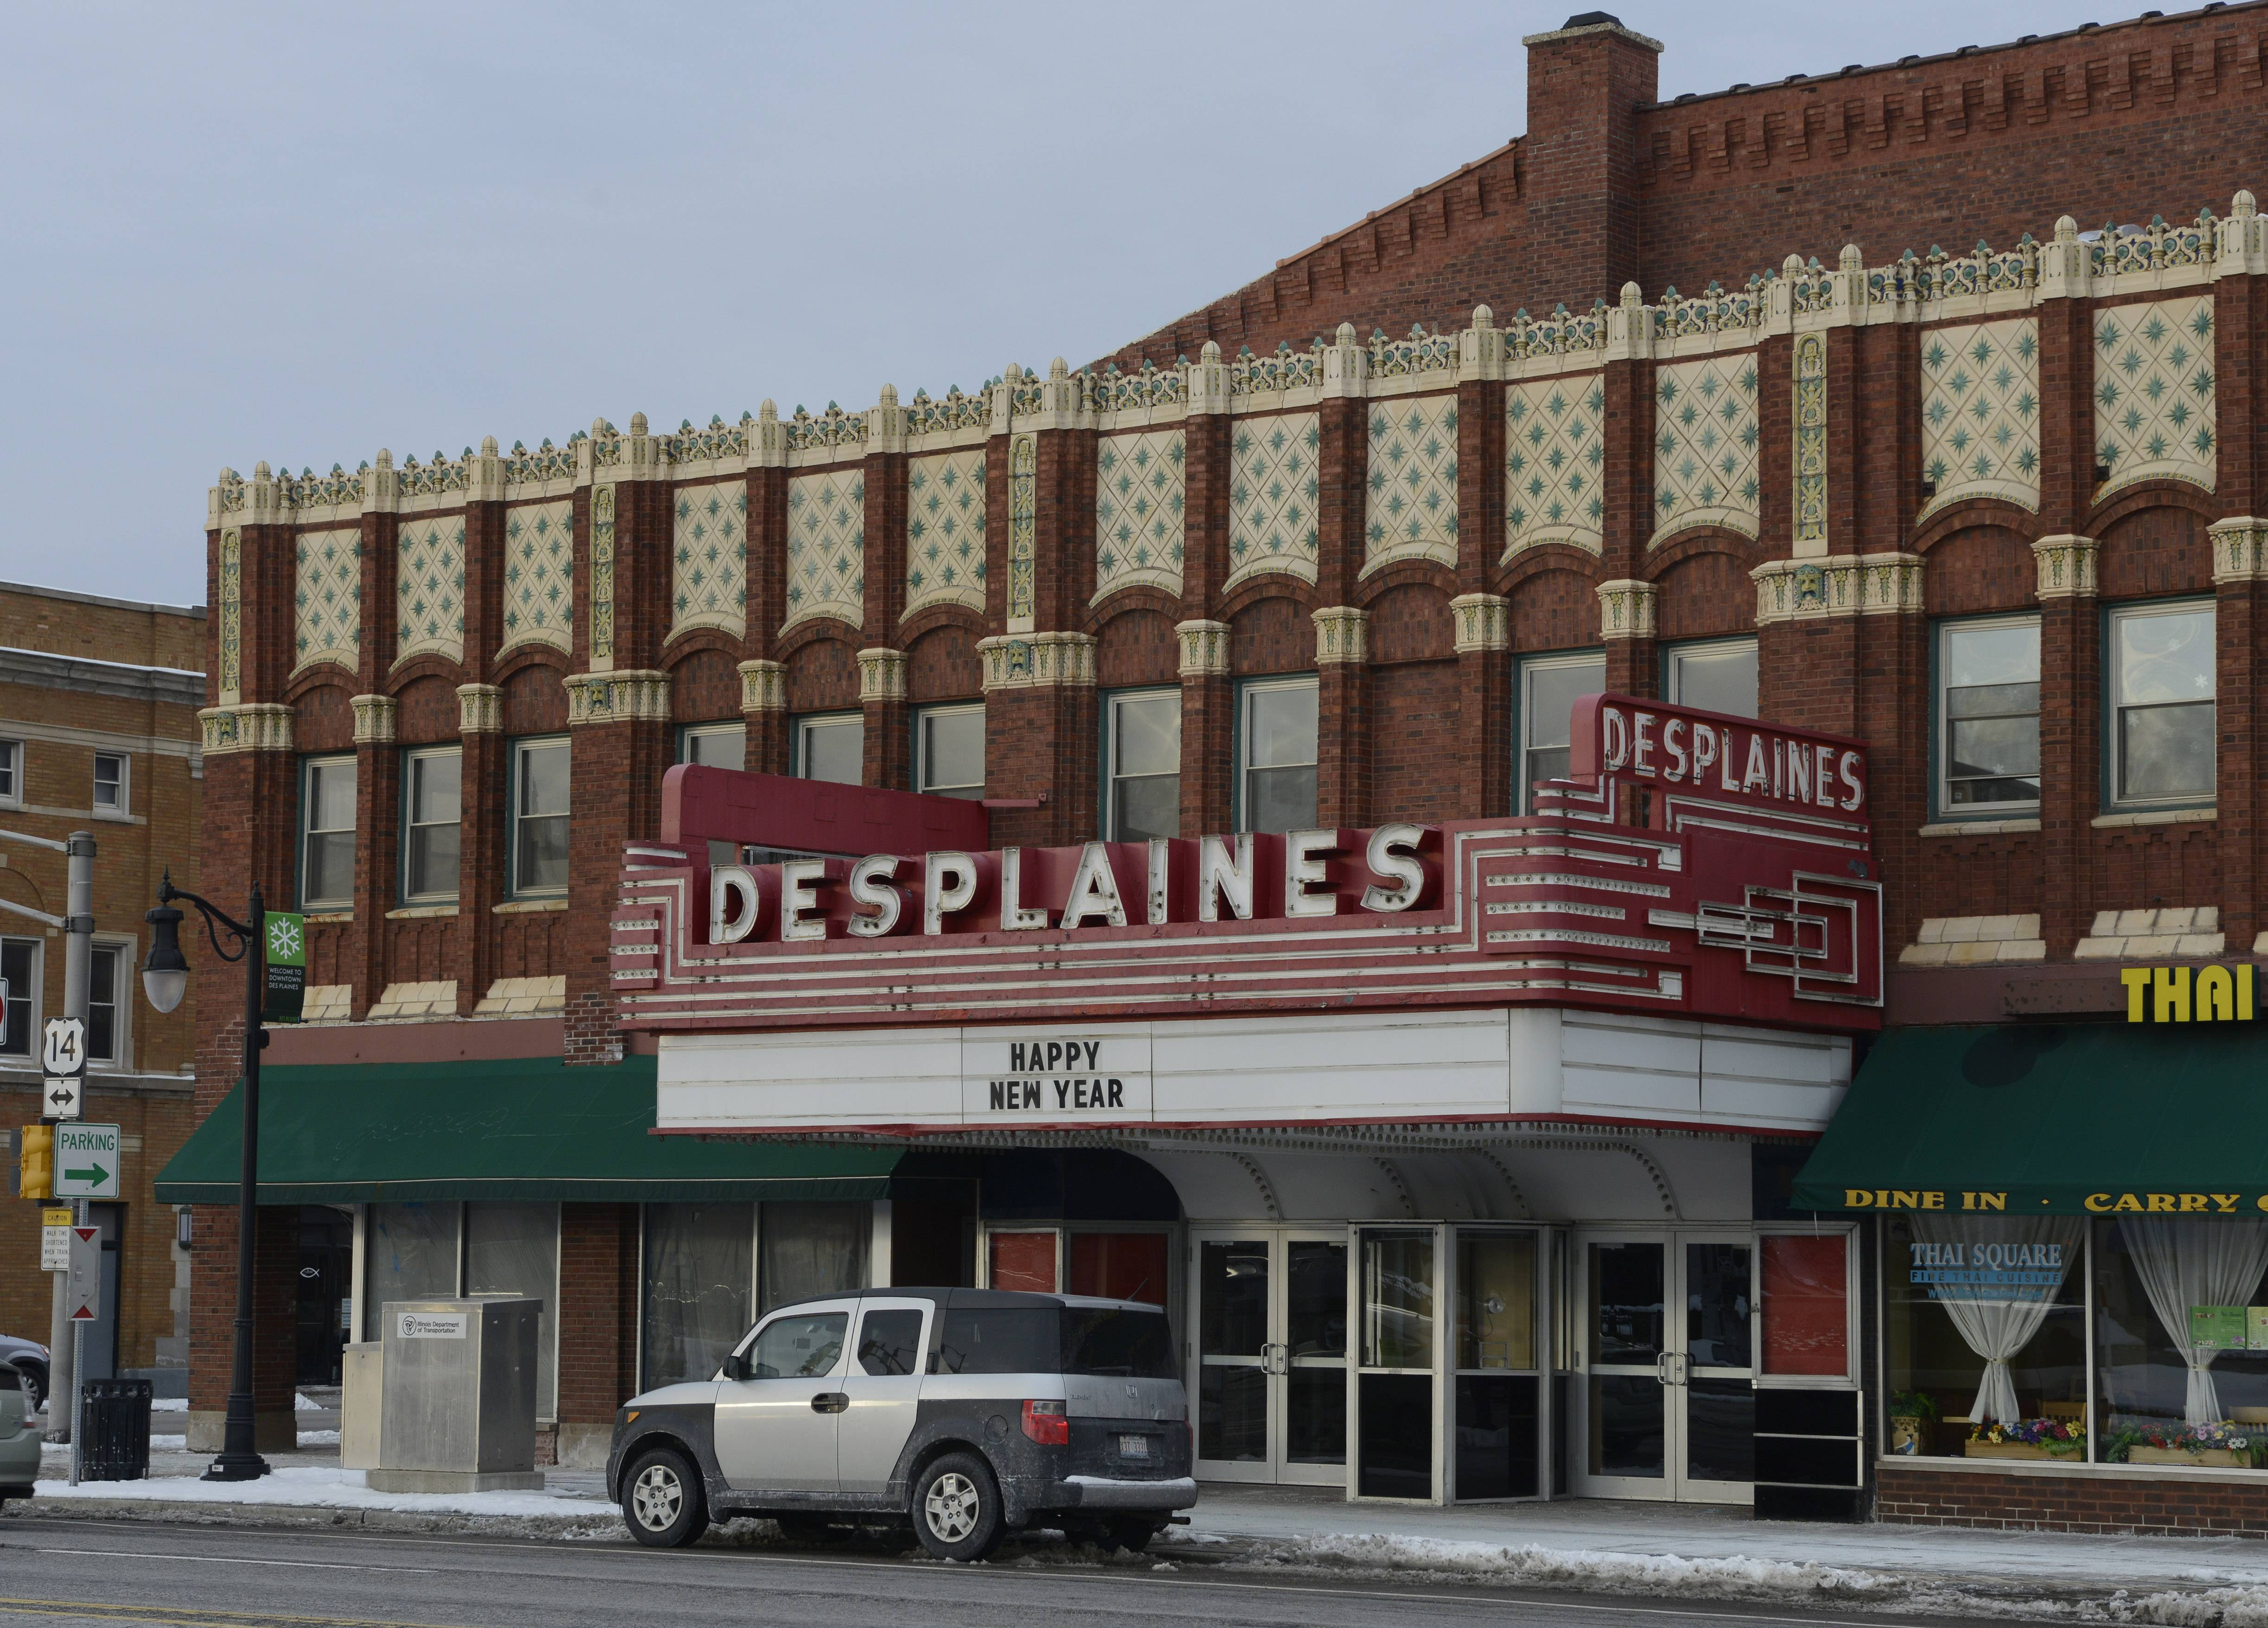 City officials have a tentative deal in place to buy the 92-year-old Des Plaines Theatre for almost $1.3 million. City aldermen could approve the deal as early as Monday.